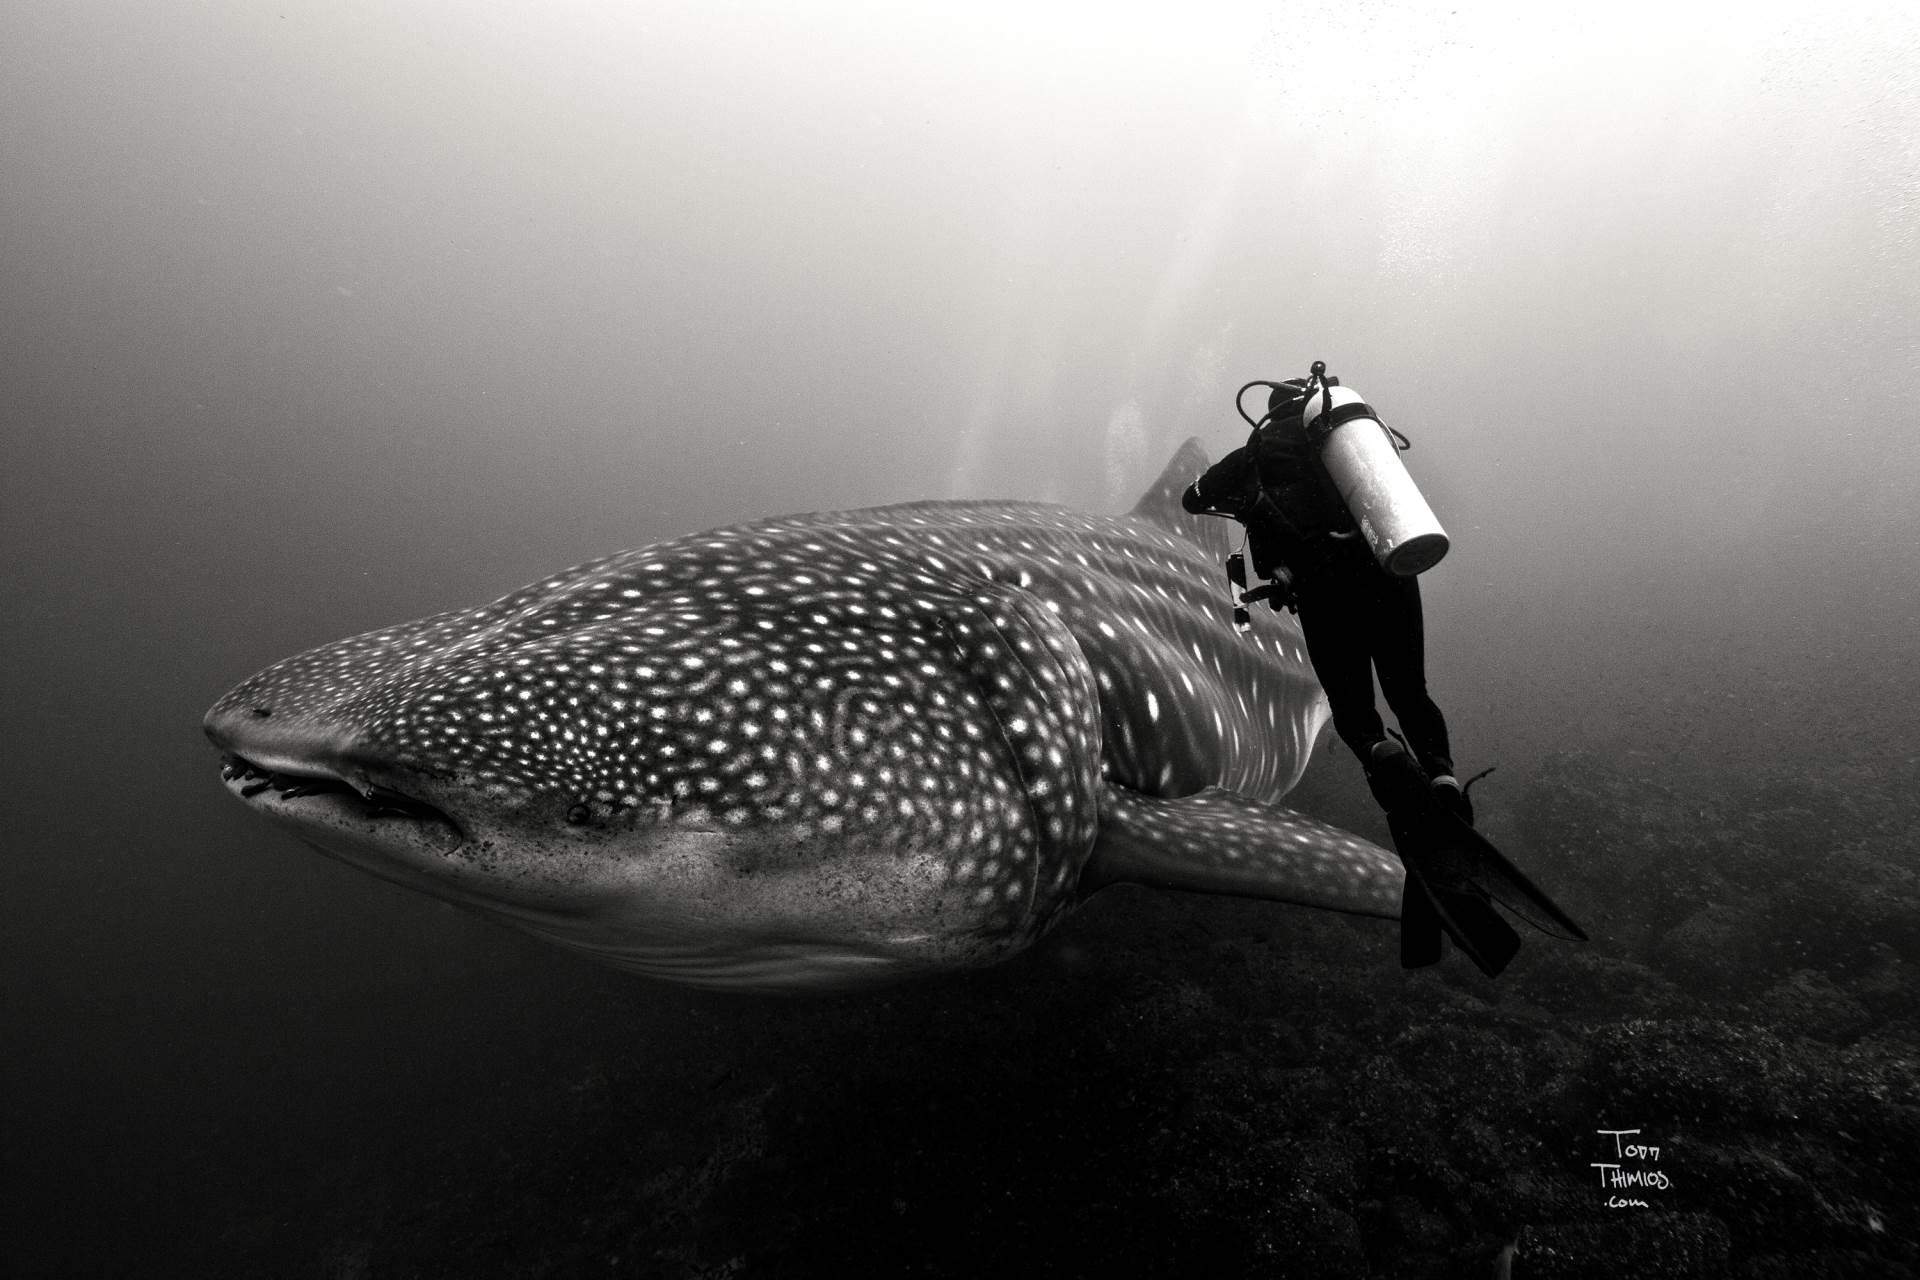 An incredible moment with the biggest whale shark I've ever seen emerge from the depths and leave us all in awe. http://www.toddthimios.com/shopgallery/